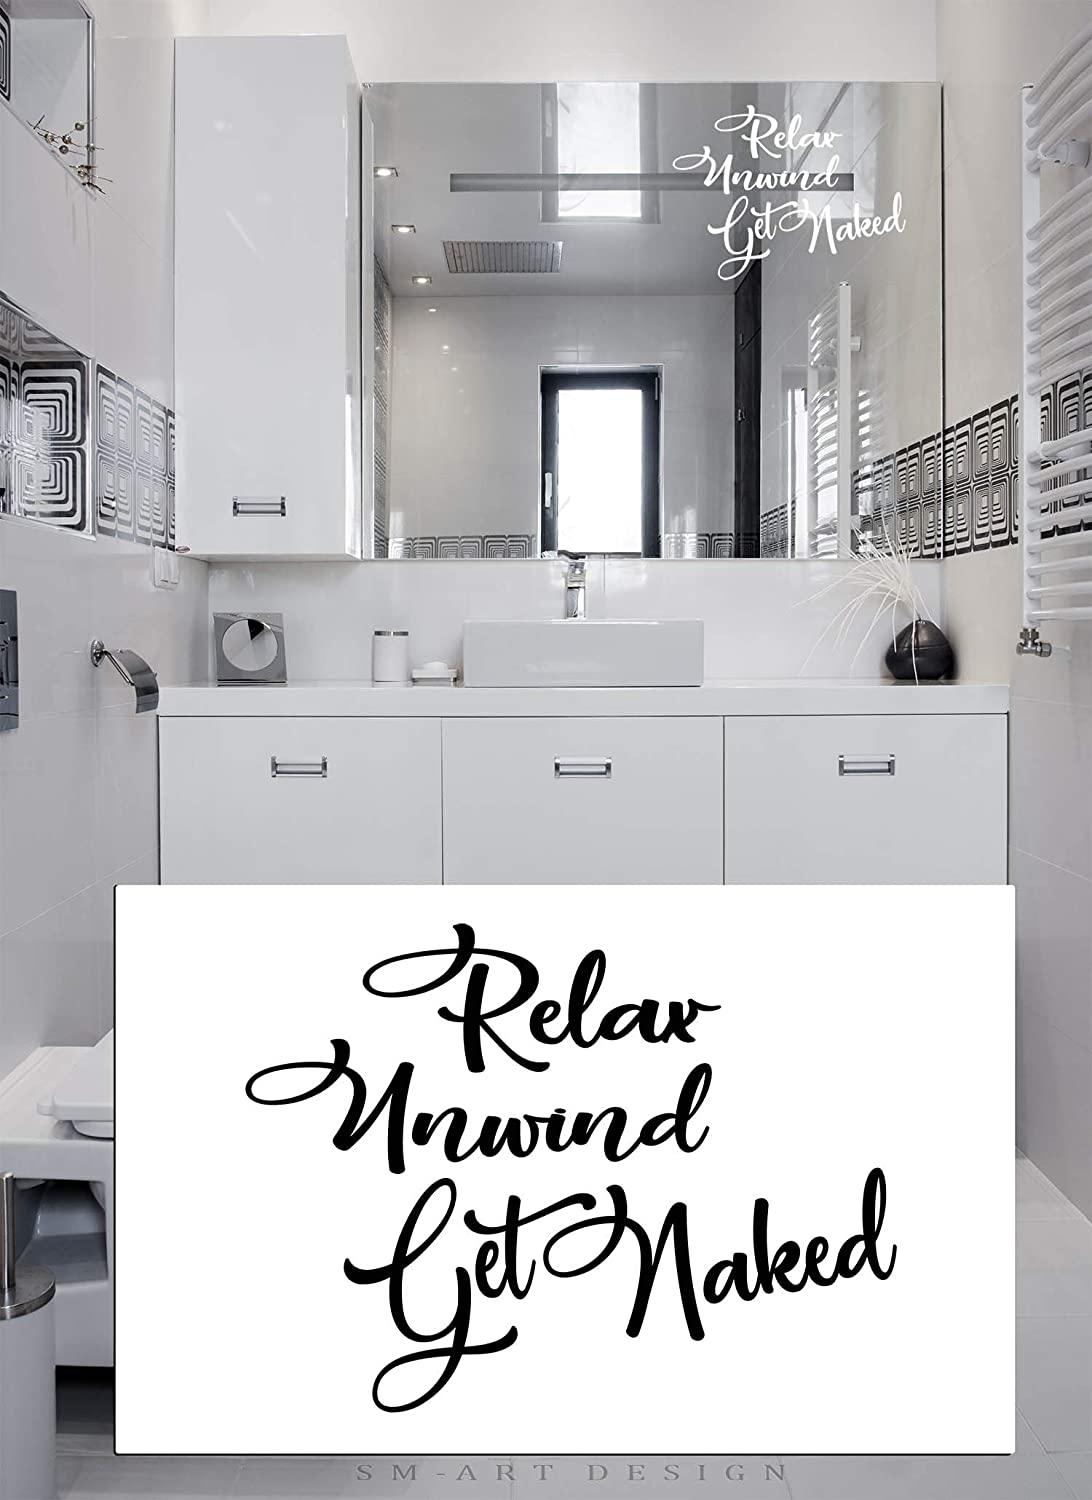 Relax unwind get naked bathroom decal bedroom wall art shower door decals mirror vinyl sticker hot tub sauna spa hotel room decor amazon ca